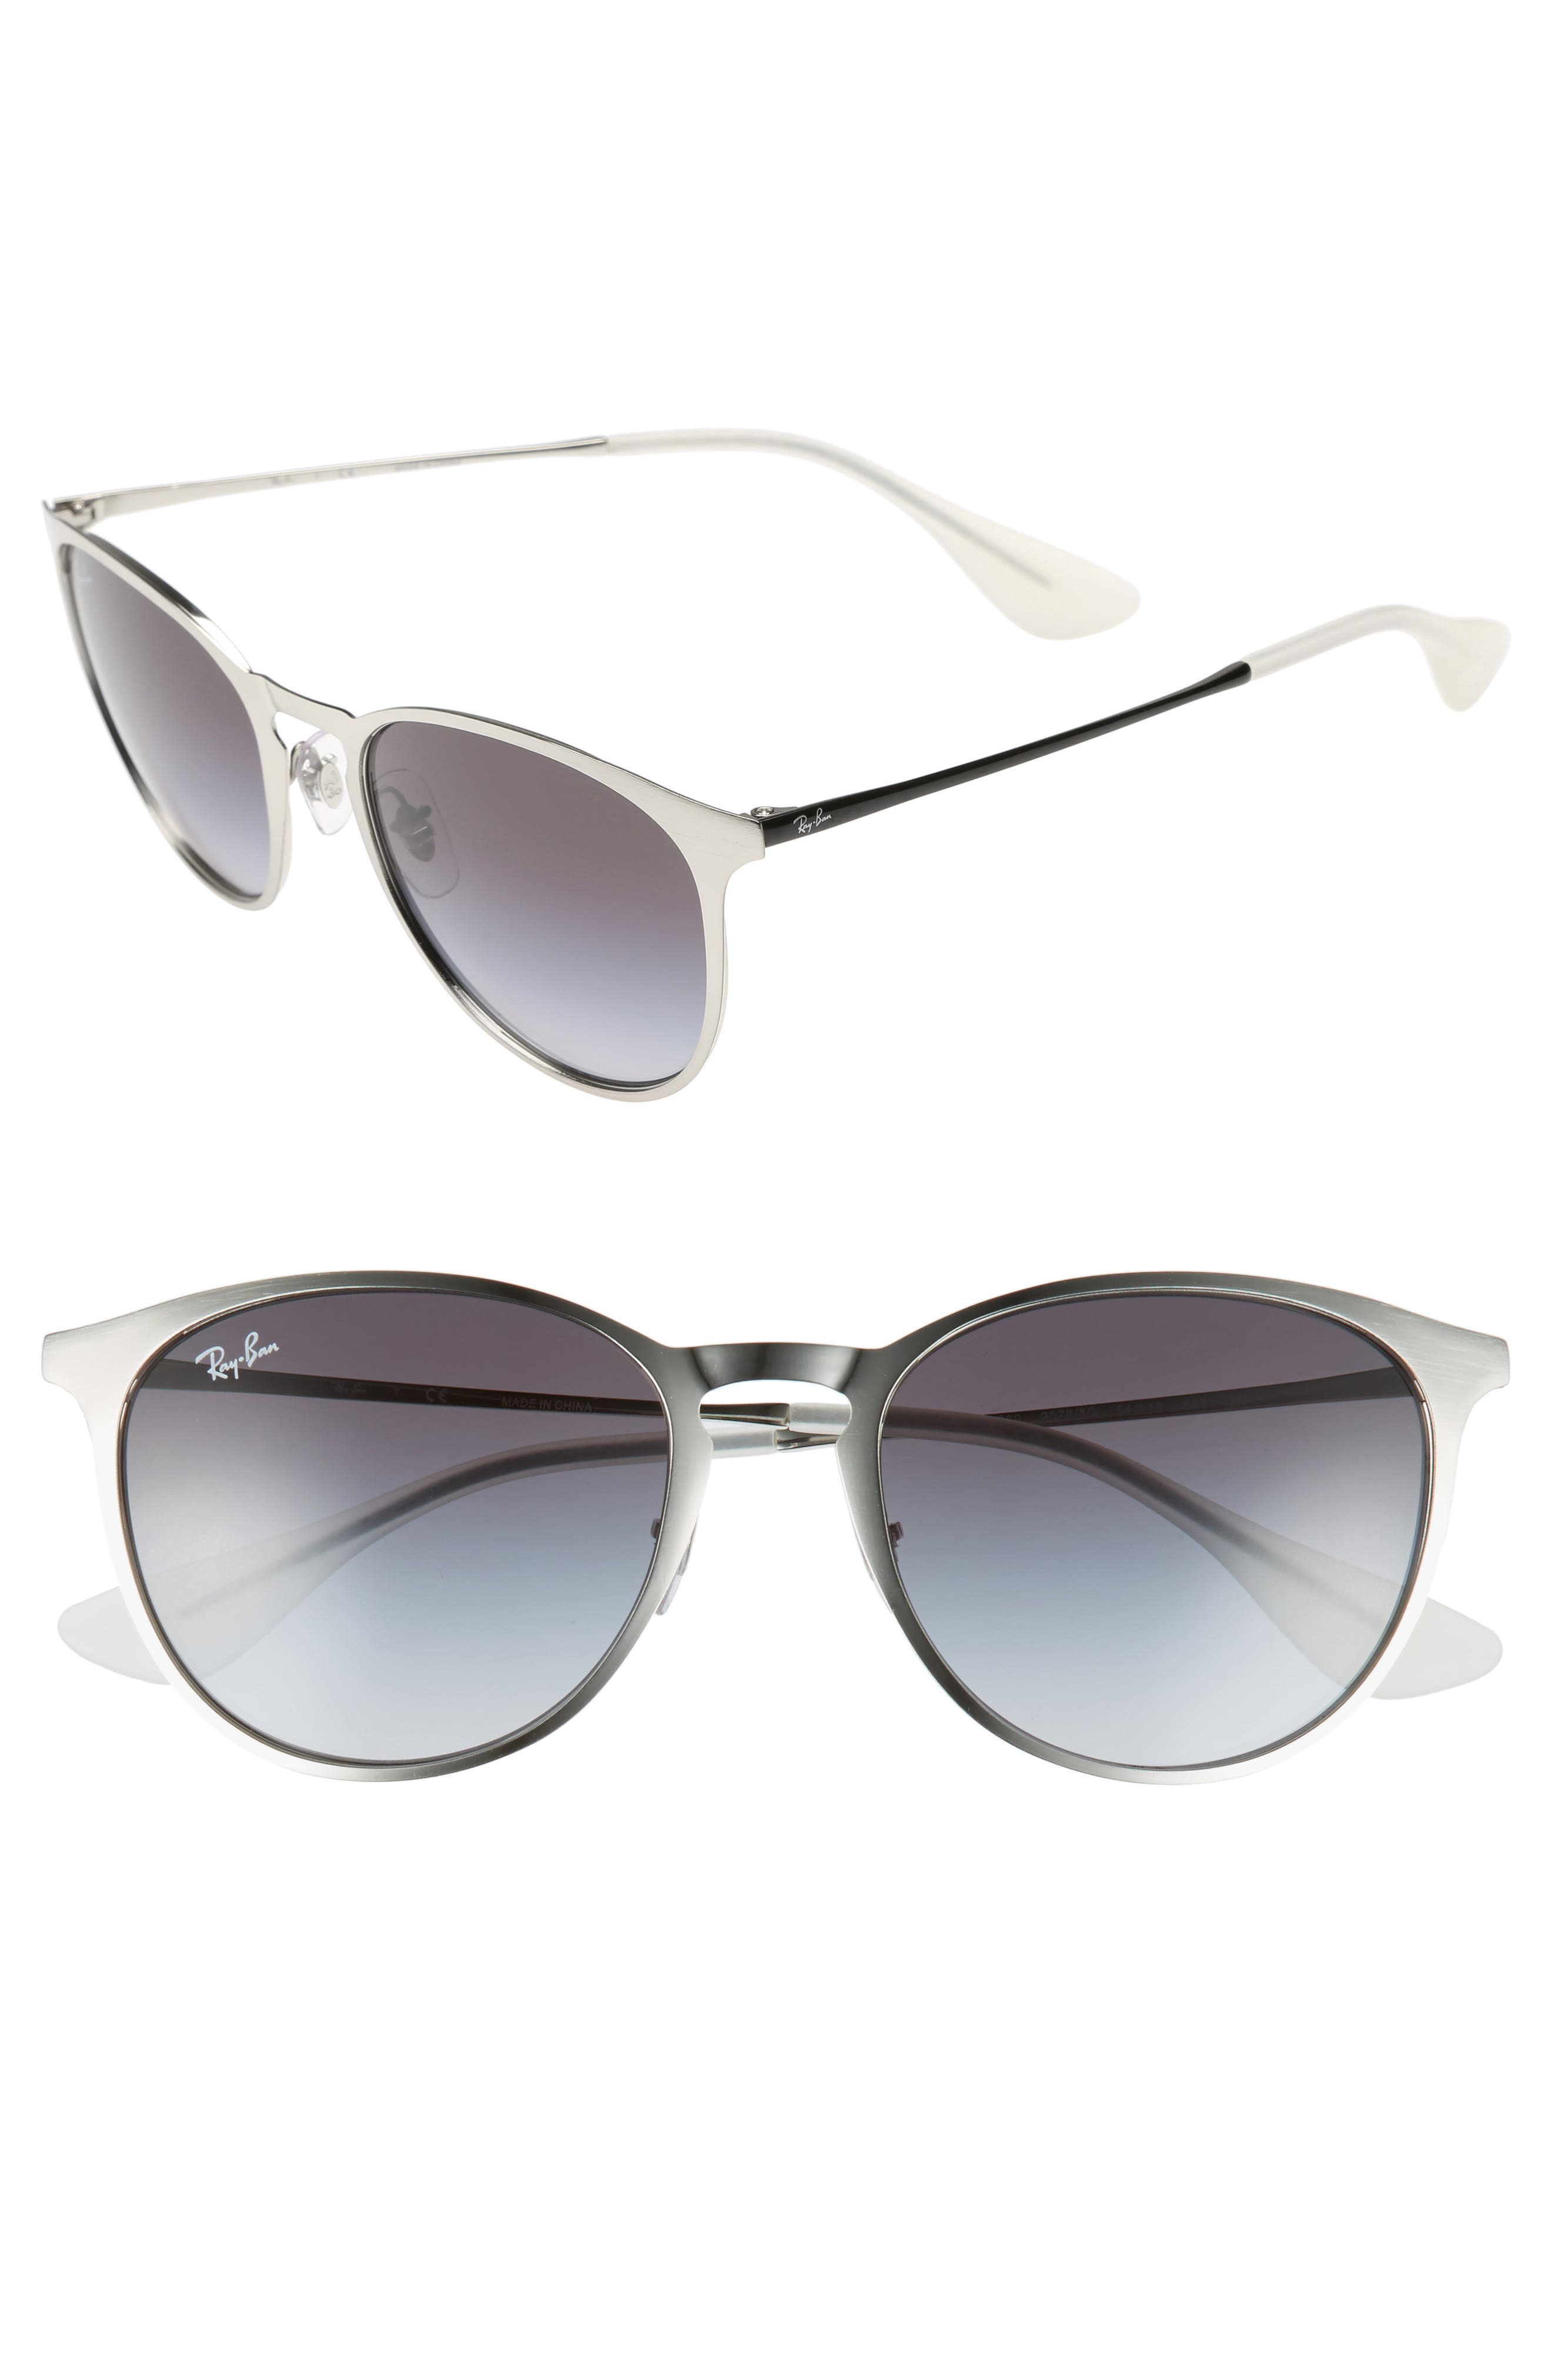 'Youngster' 54mm Sunglasses,                             Main thumbnail 1, color,                             040